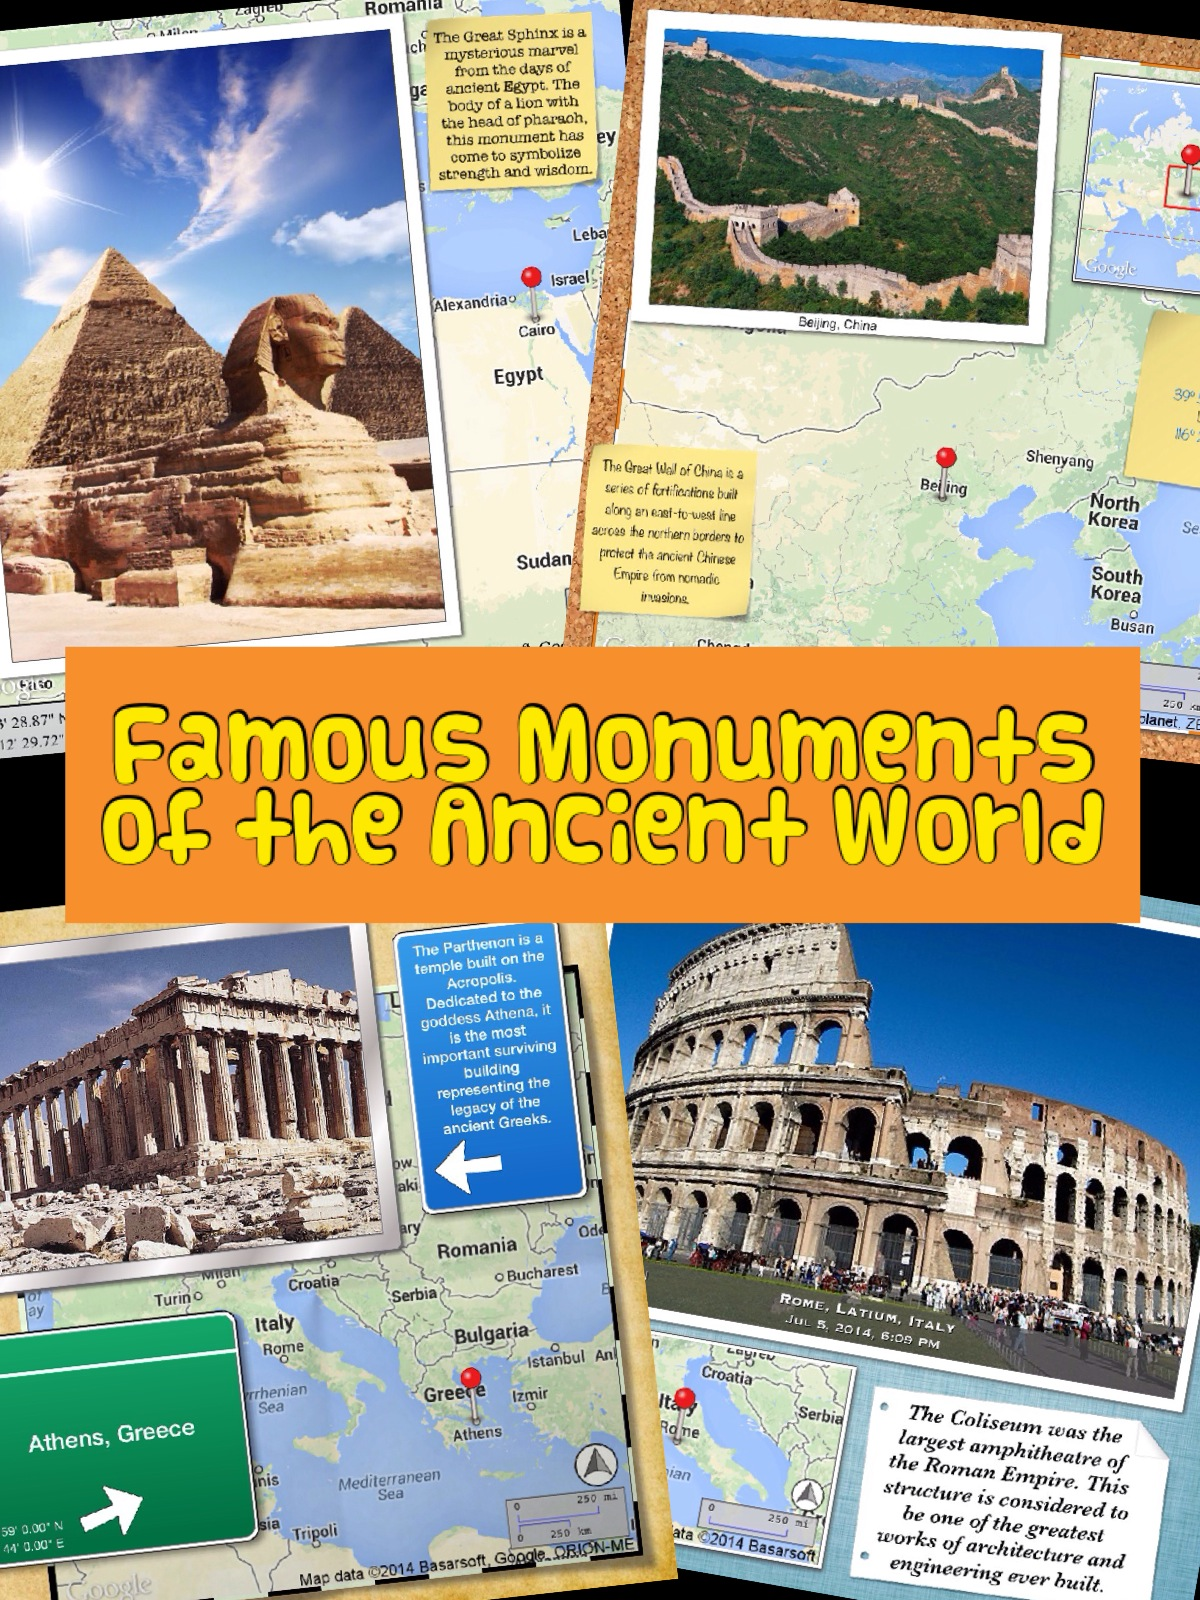 App Smashing: Famous Monuments of the Ancient World